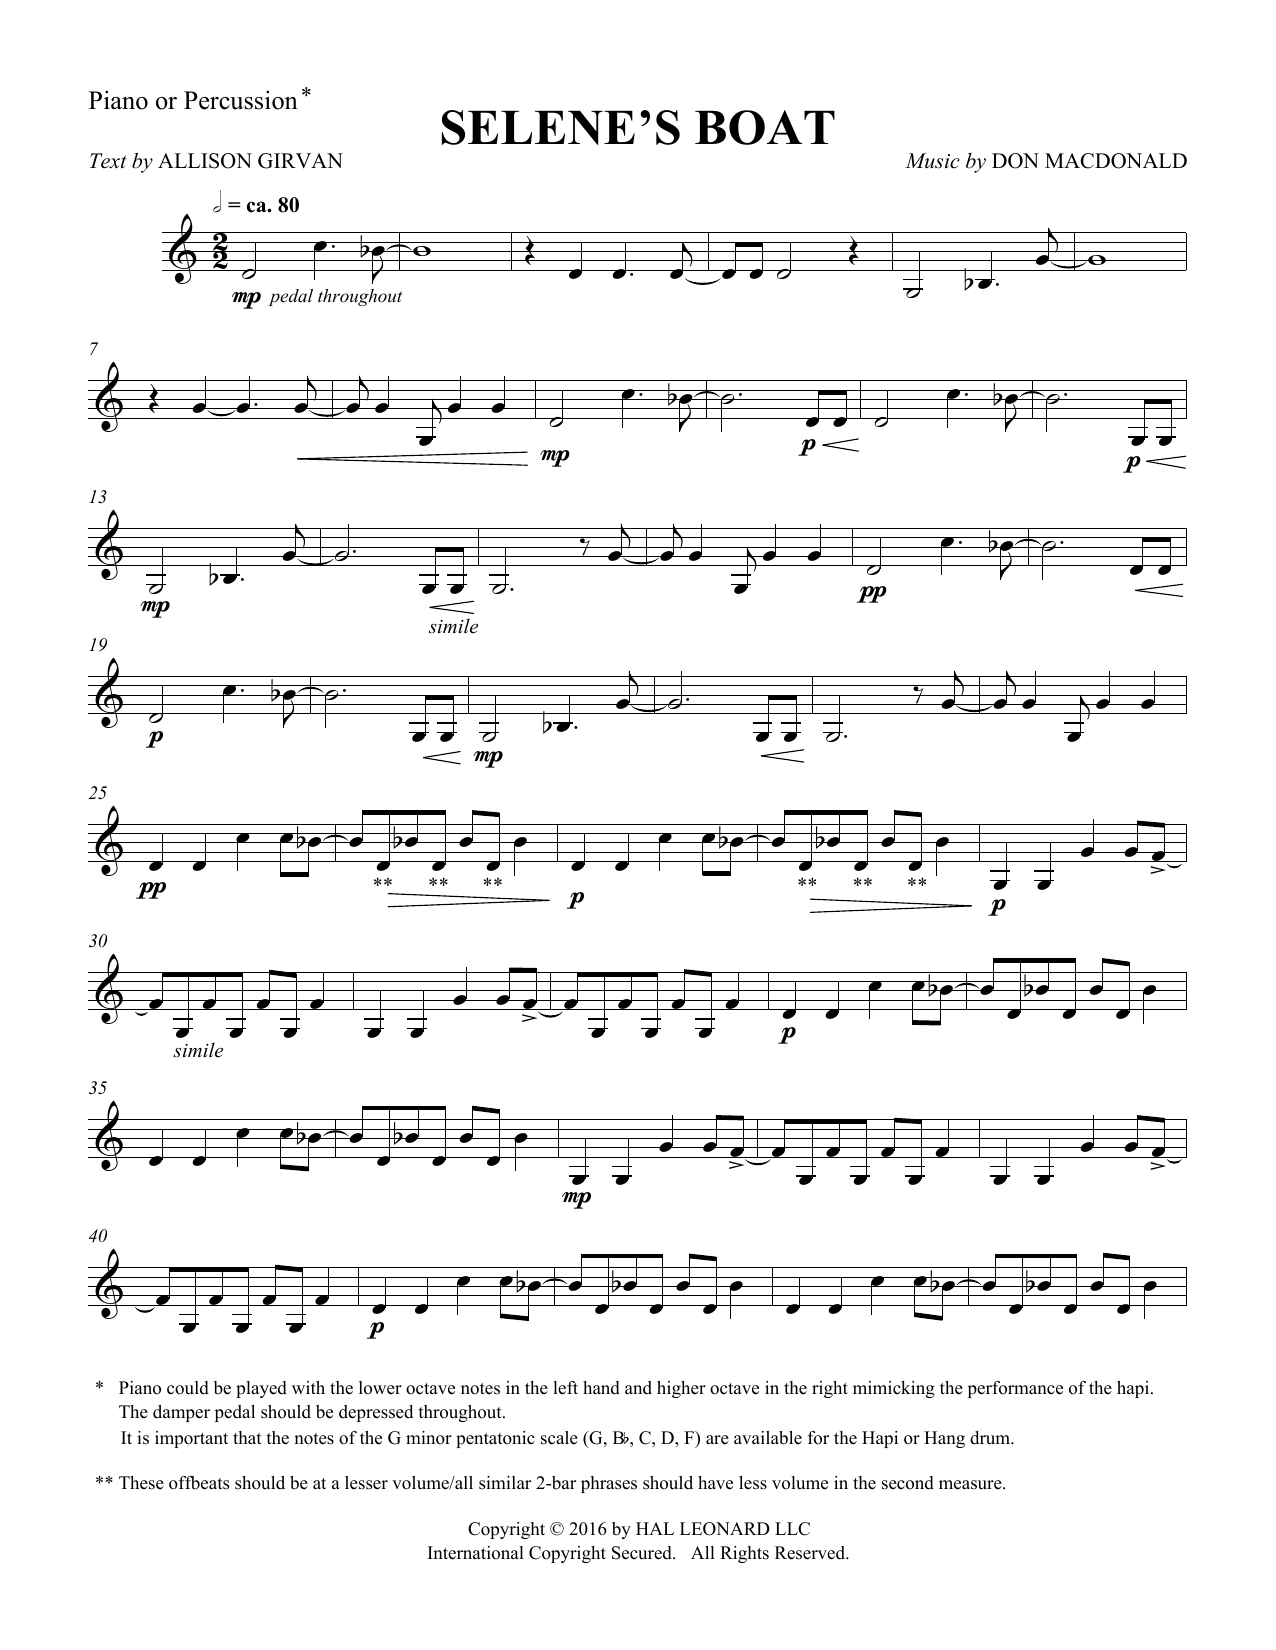 Don MacDonald Selene's Boat - Percussion sheet music notes and chords. Download Printable PDF.